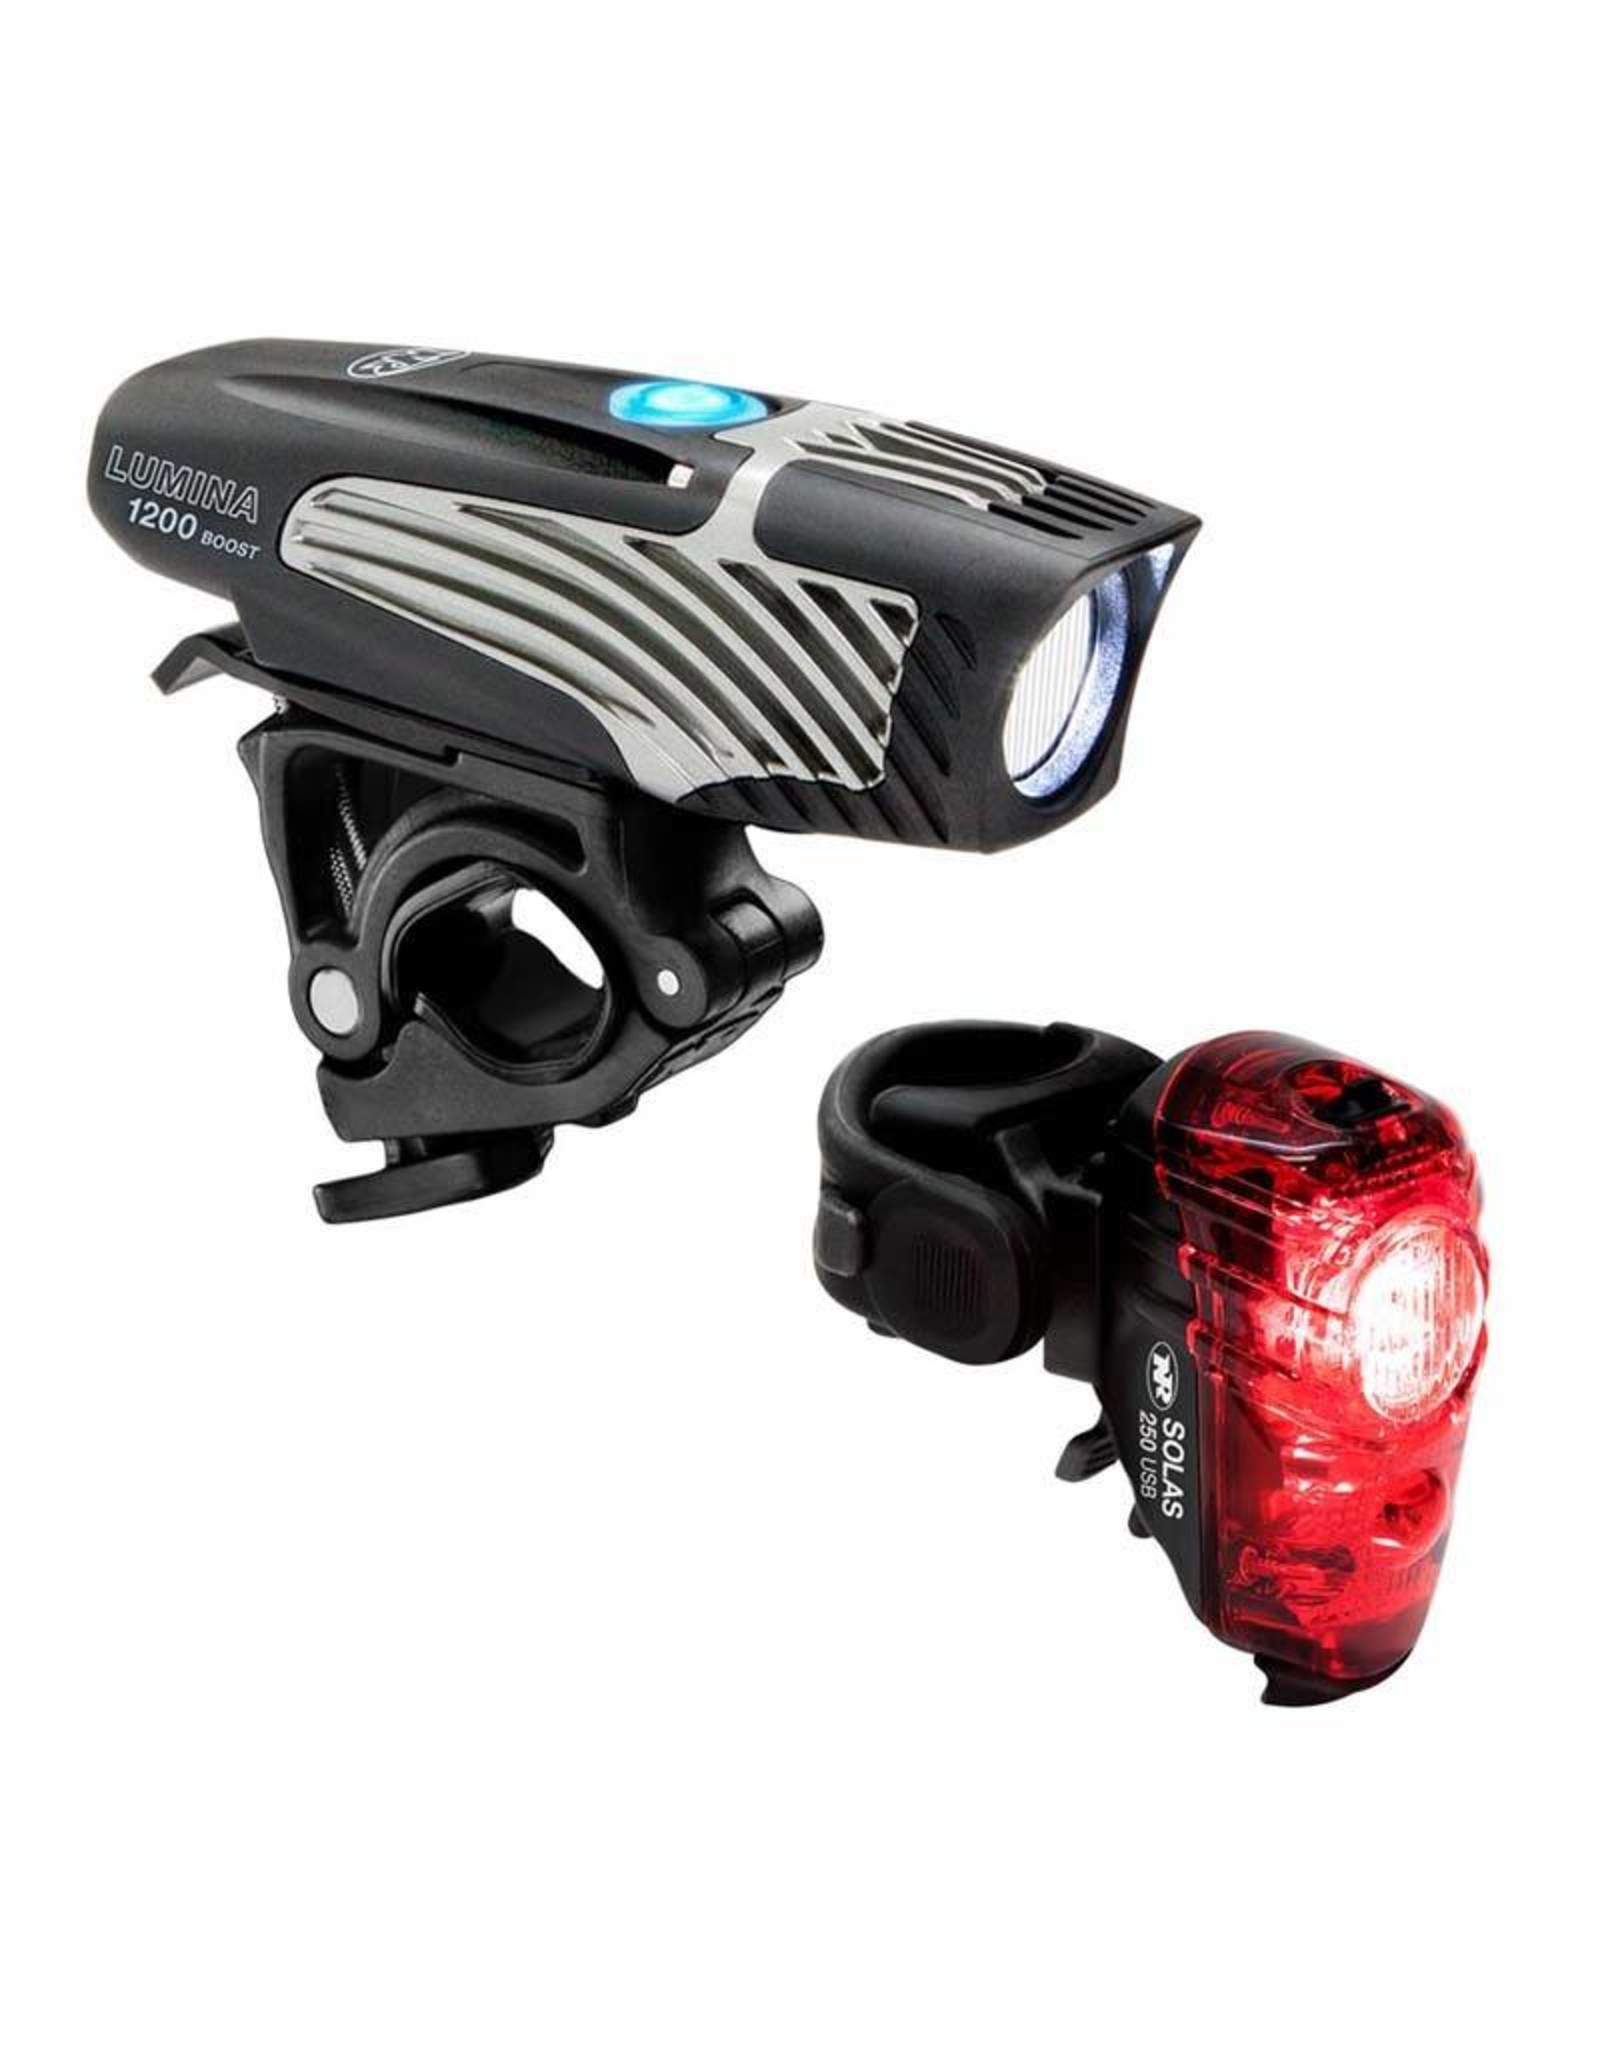 NiteRider NiteRider Lumina 1200 Boost Headlight and Solas 250  Taillight Set